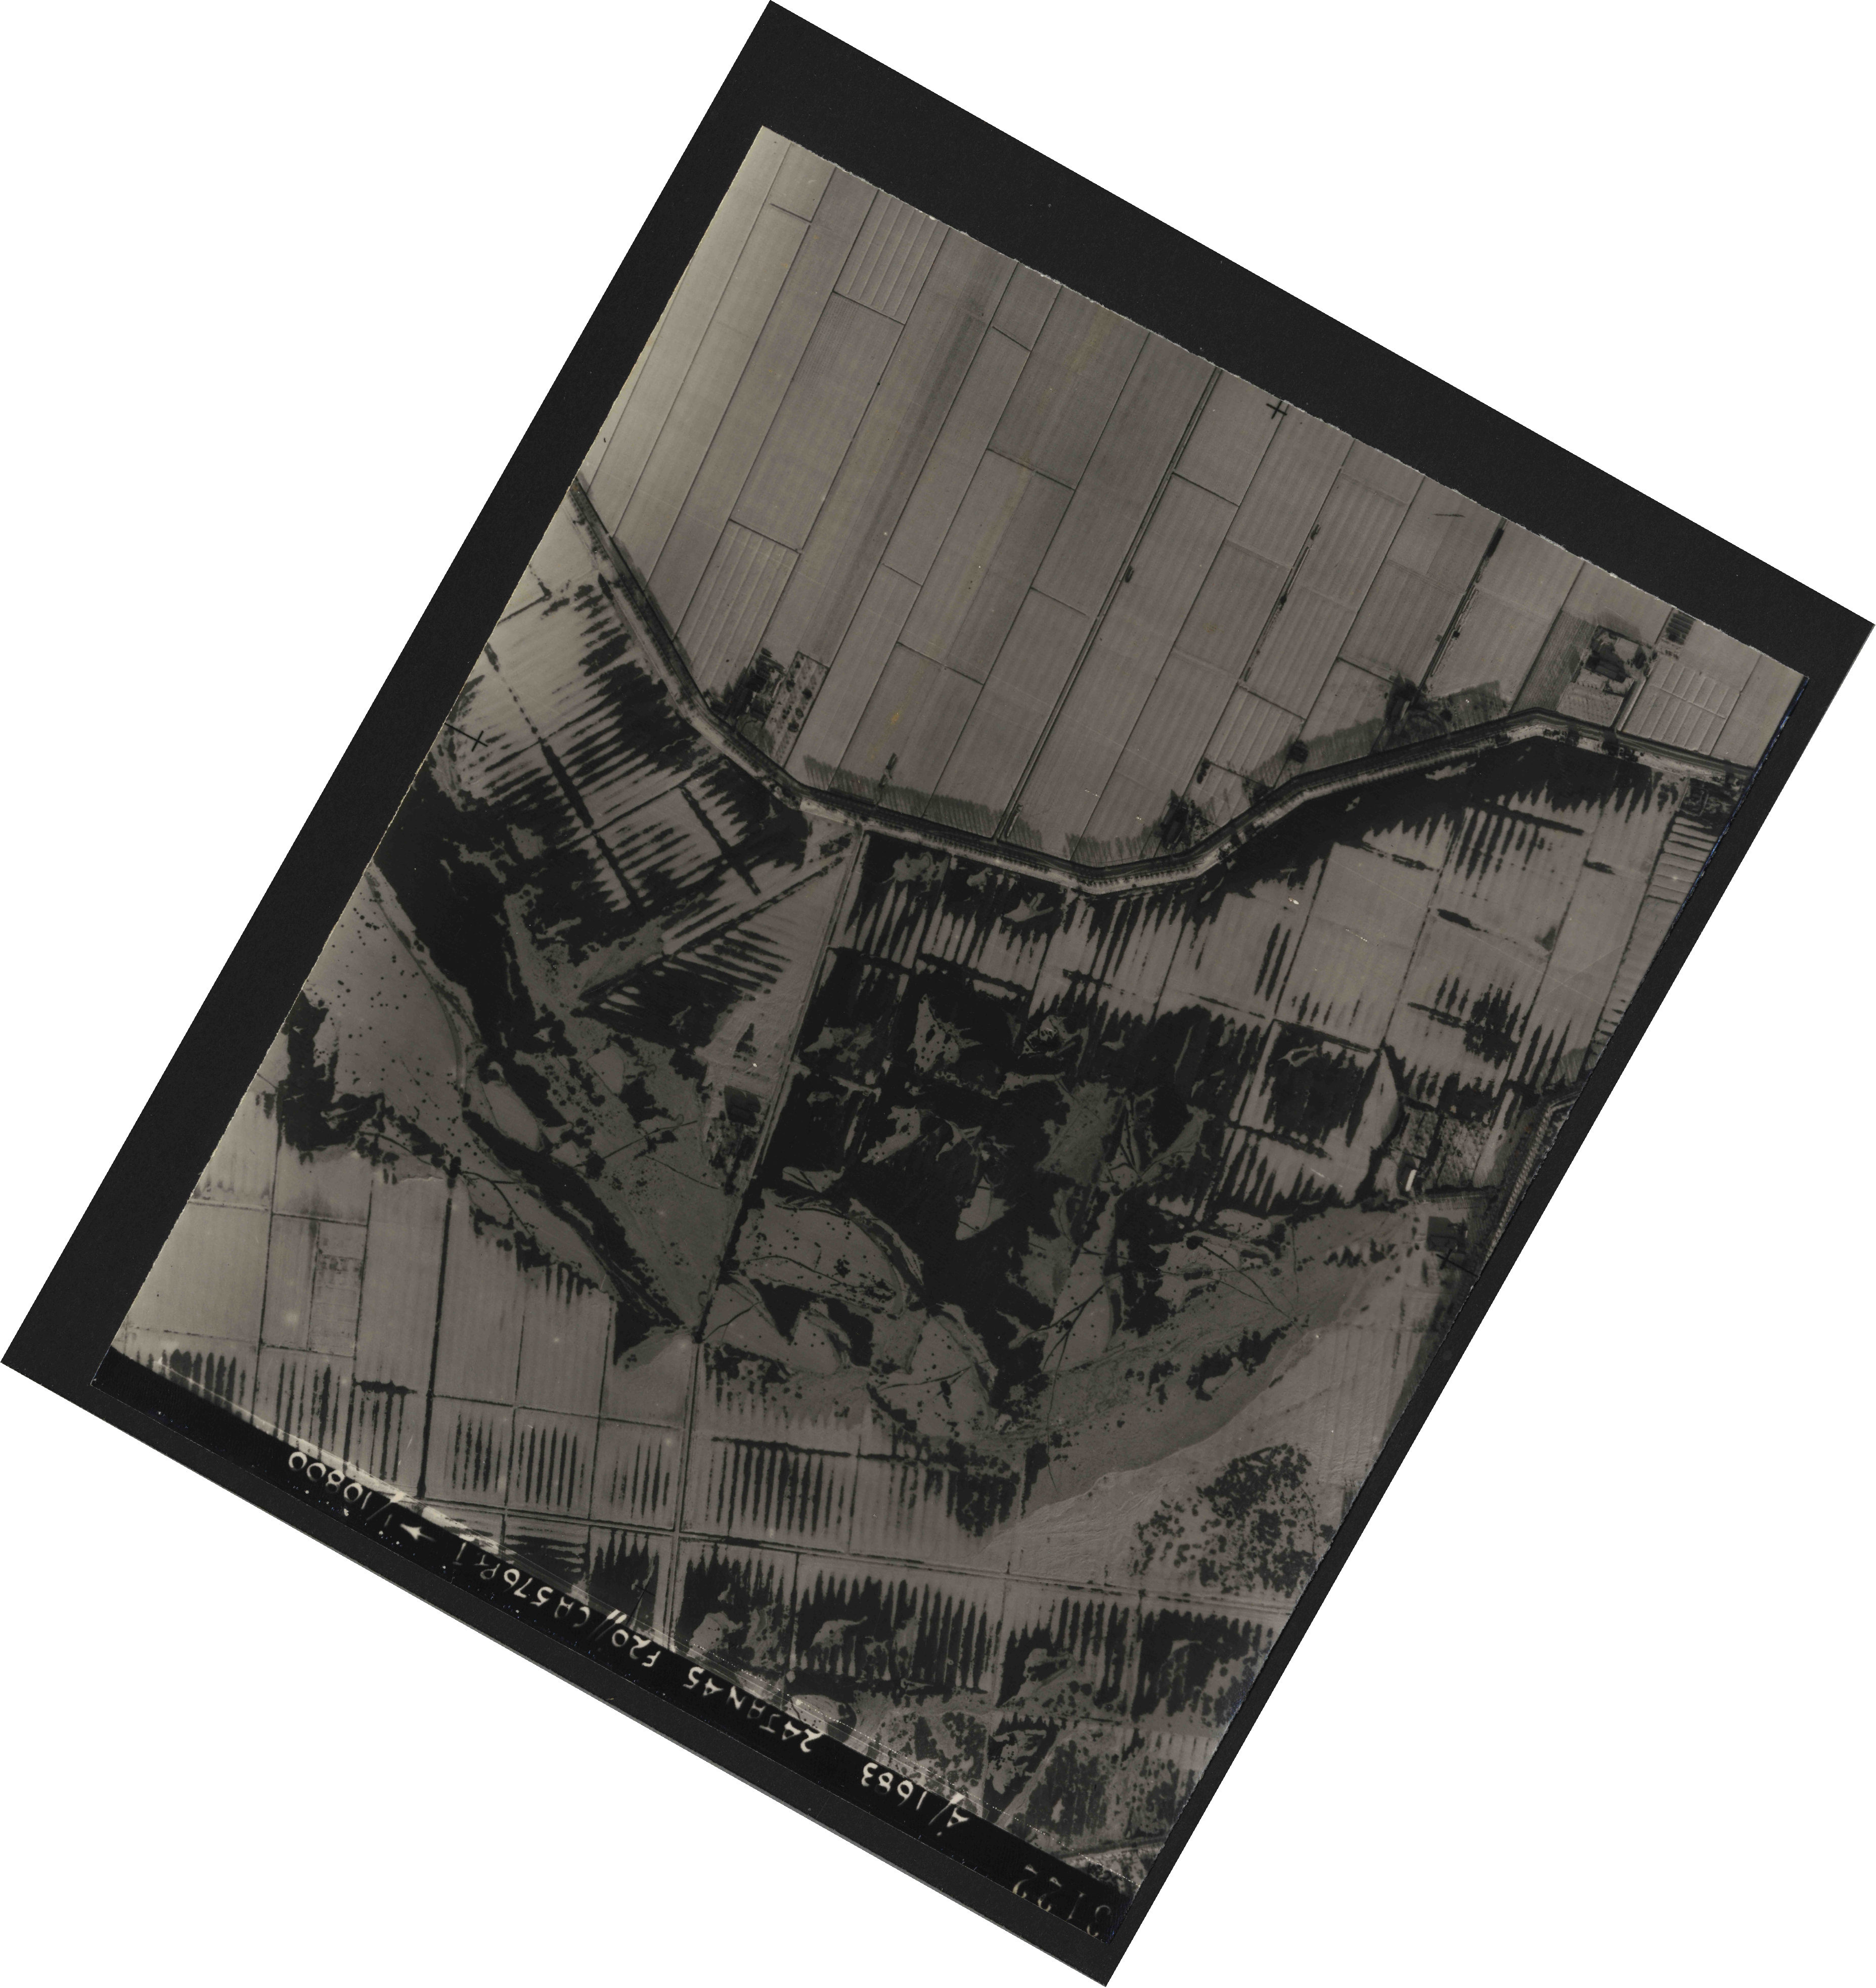 Collection RAF aerial photos 1940-1945 - flight 268, run 07, photo 3122